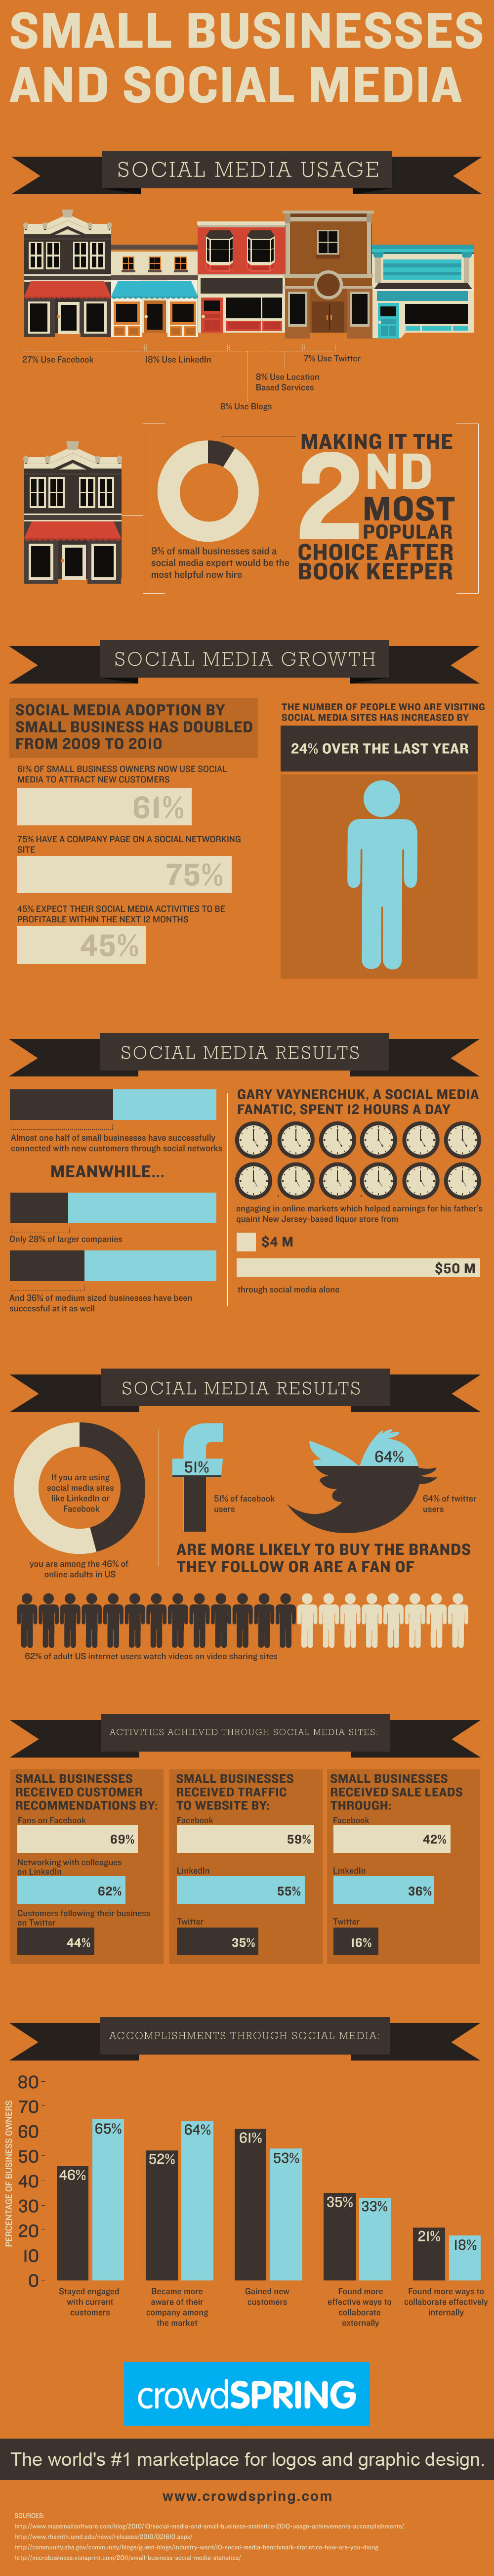 small business social media infographic crowdspring Tracy Bryan Kite   Texas Sex Offender Registry